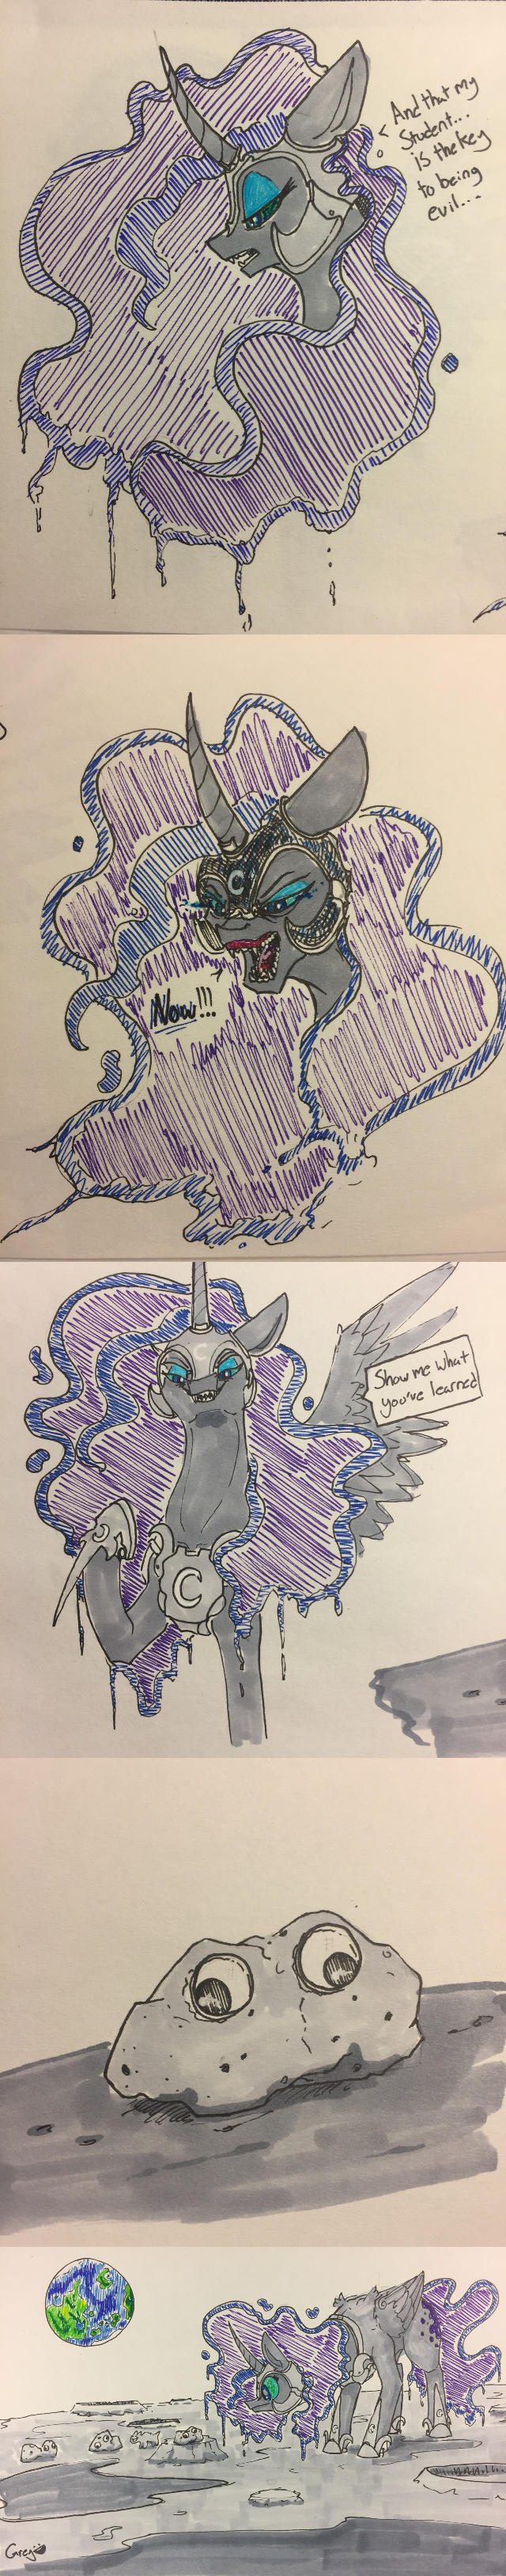 nightmare moon OC skippy the moon rock princess luna comic kevin greyscale - 9177775104